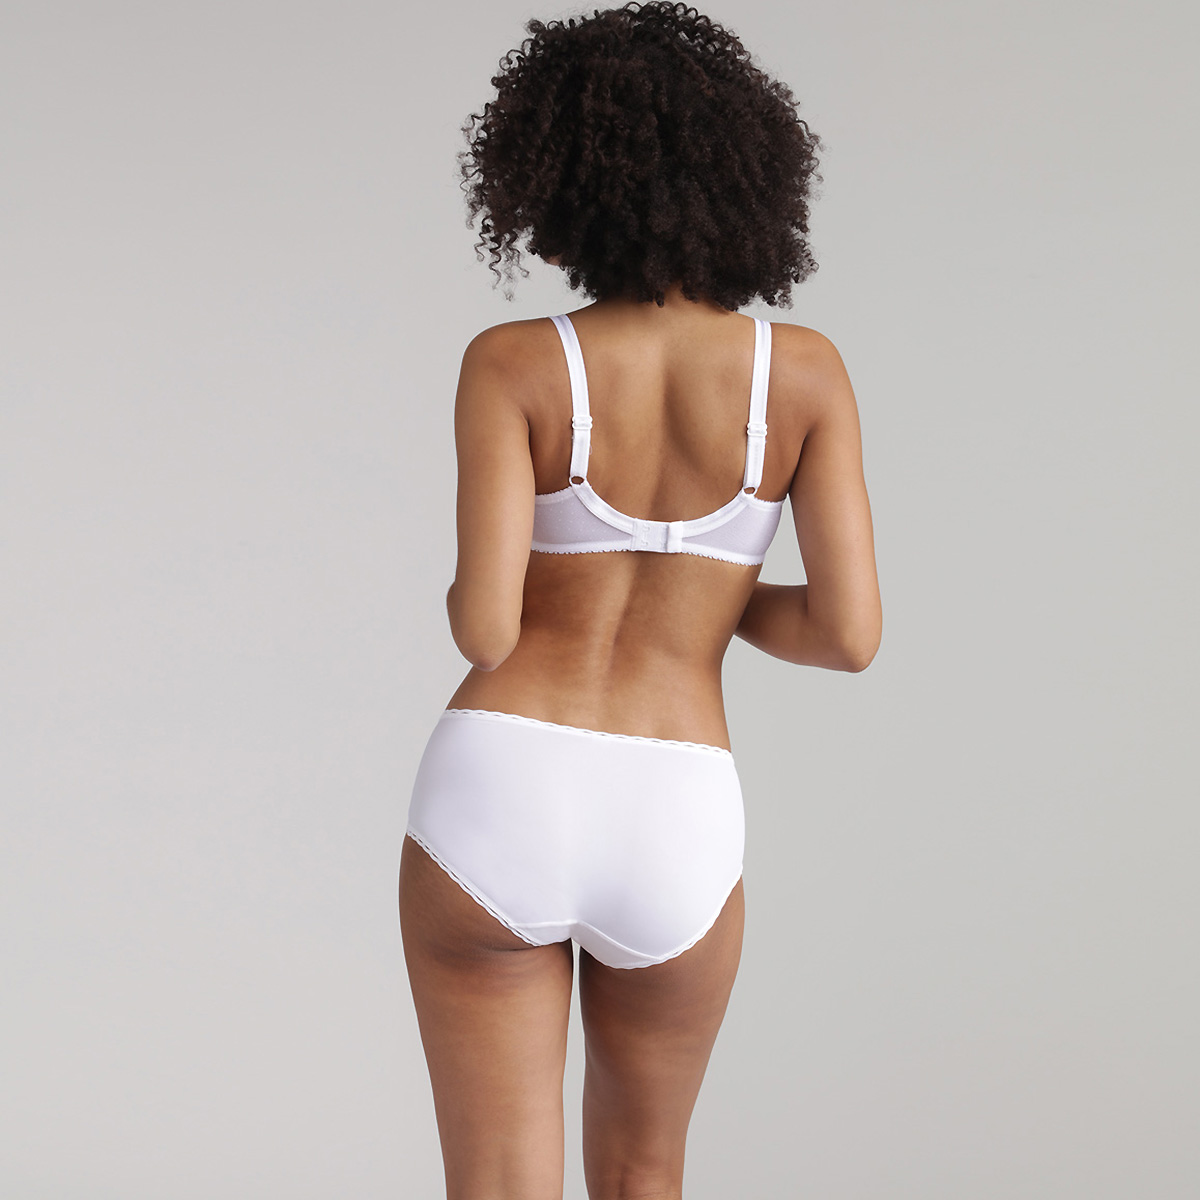 Full Cup Bra in White – Classic Micro Support, , PLAYTEX